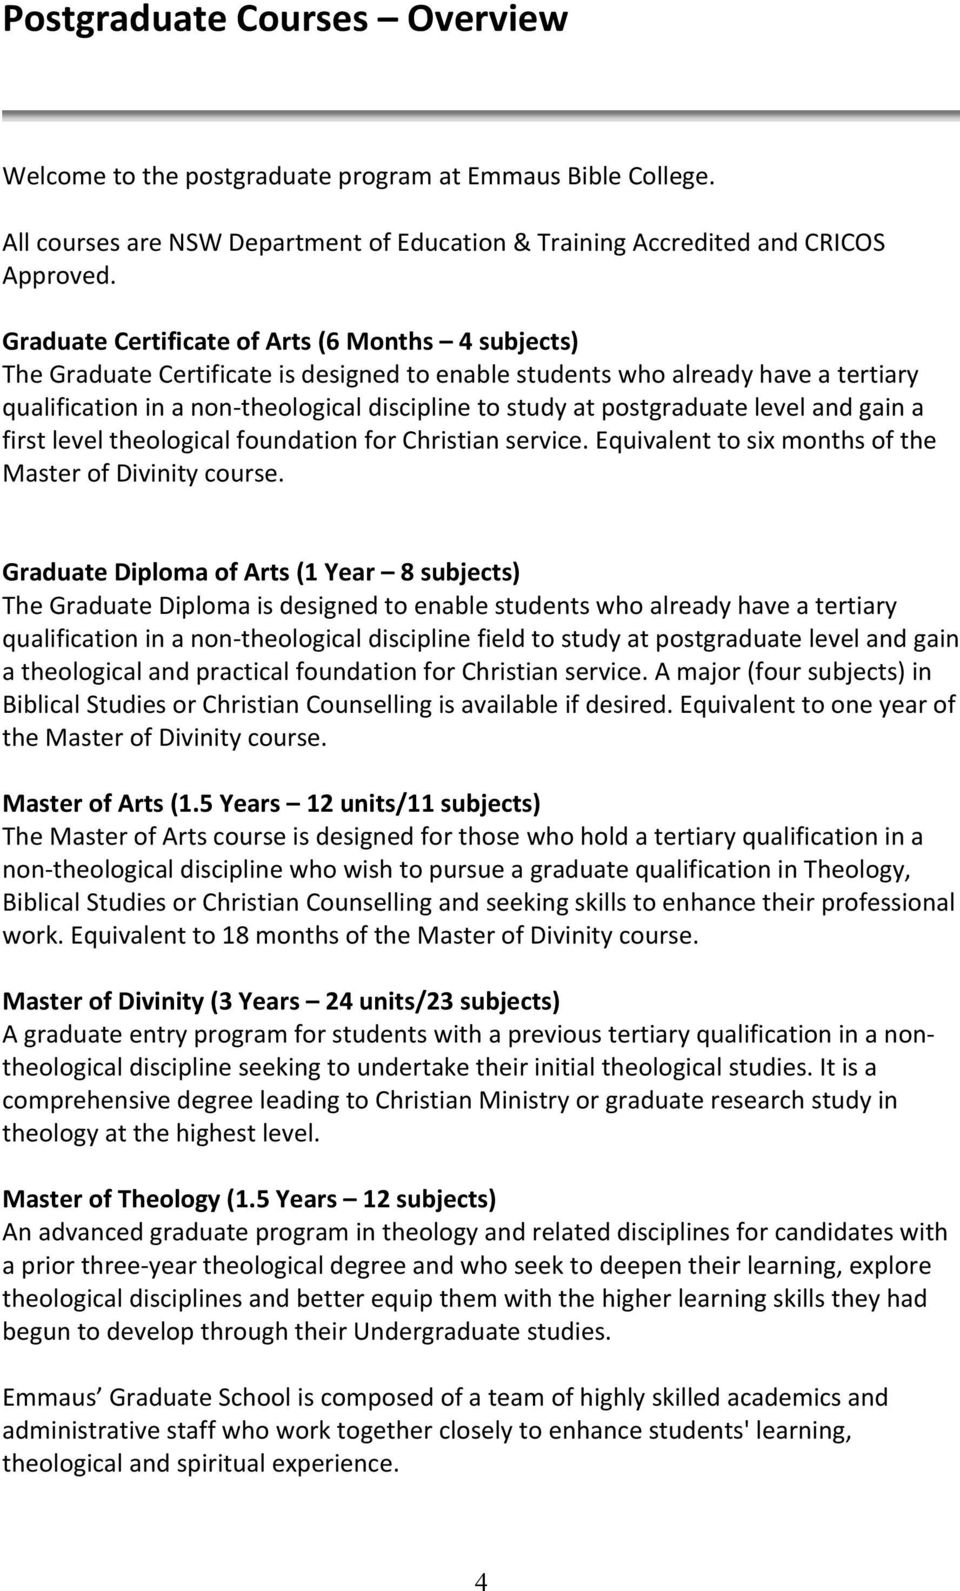 postgraduate level and gain a first level theological foundation for Christian service. Equivalent to six months of the Master of Divinity course.